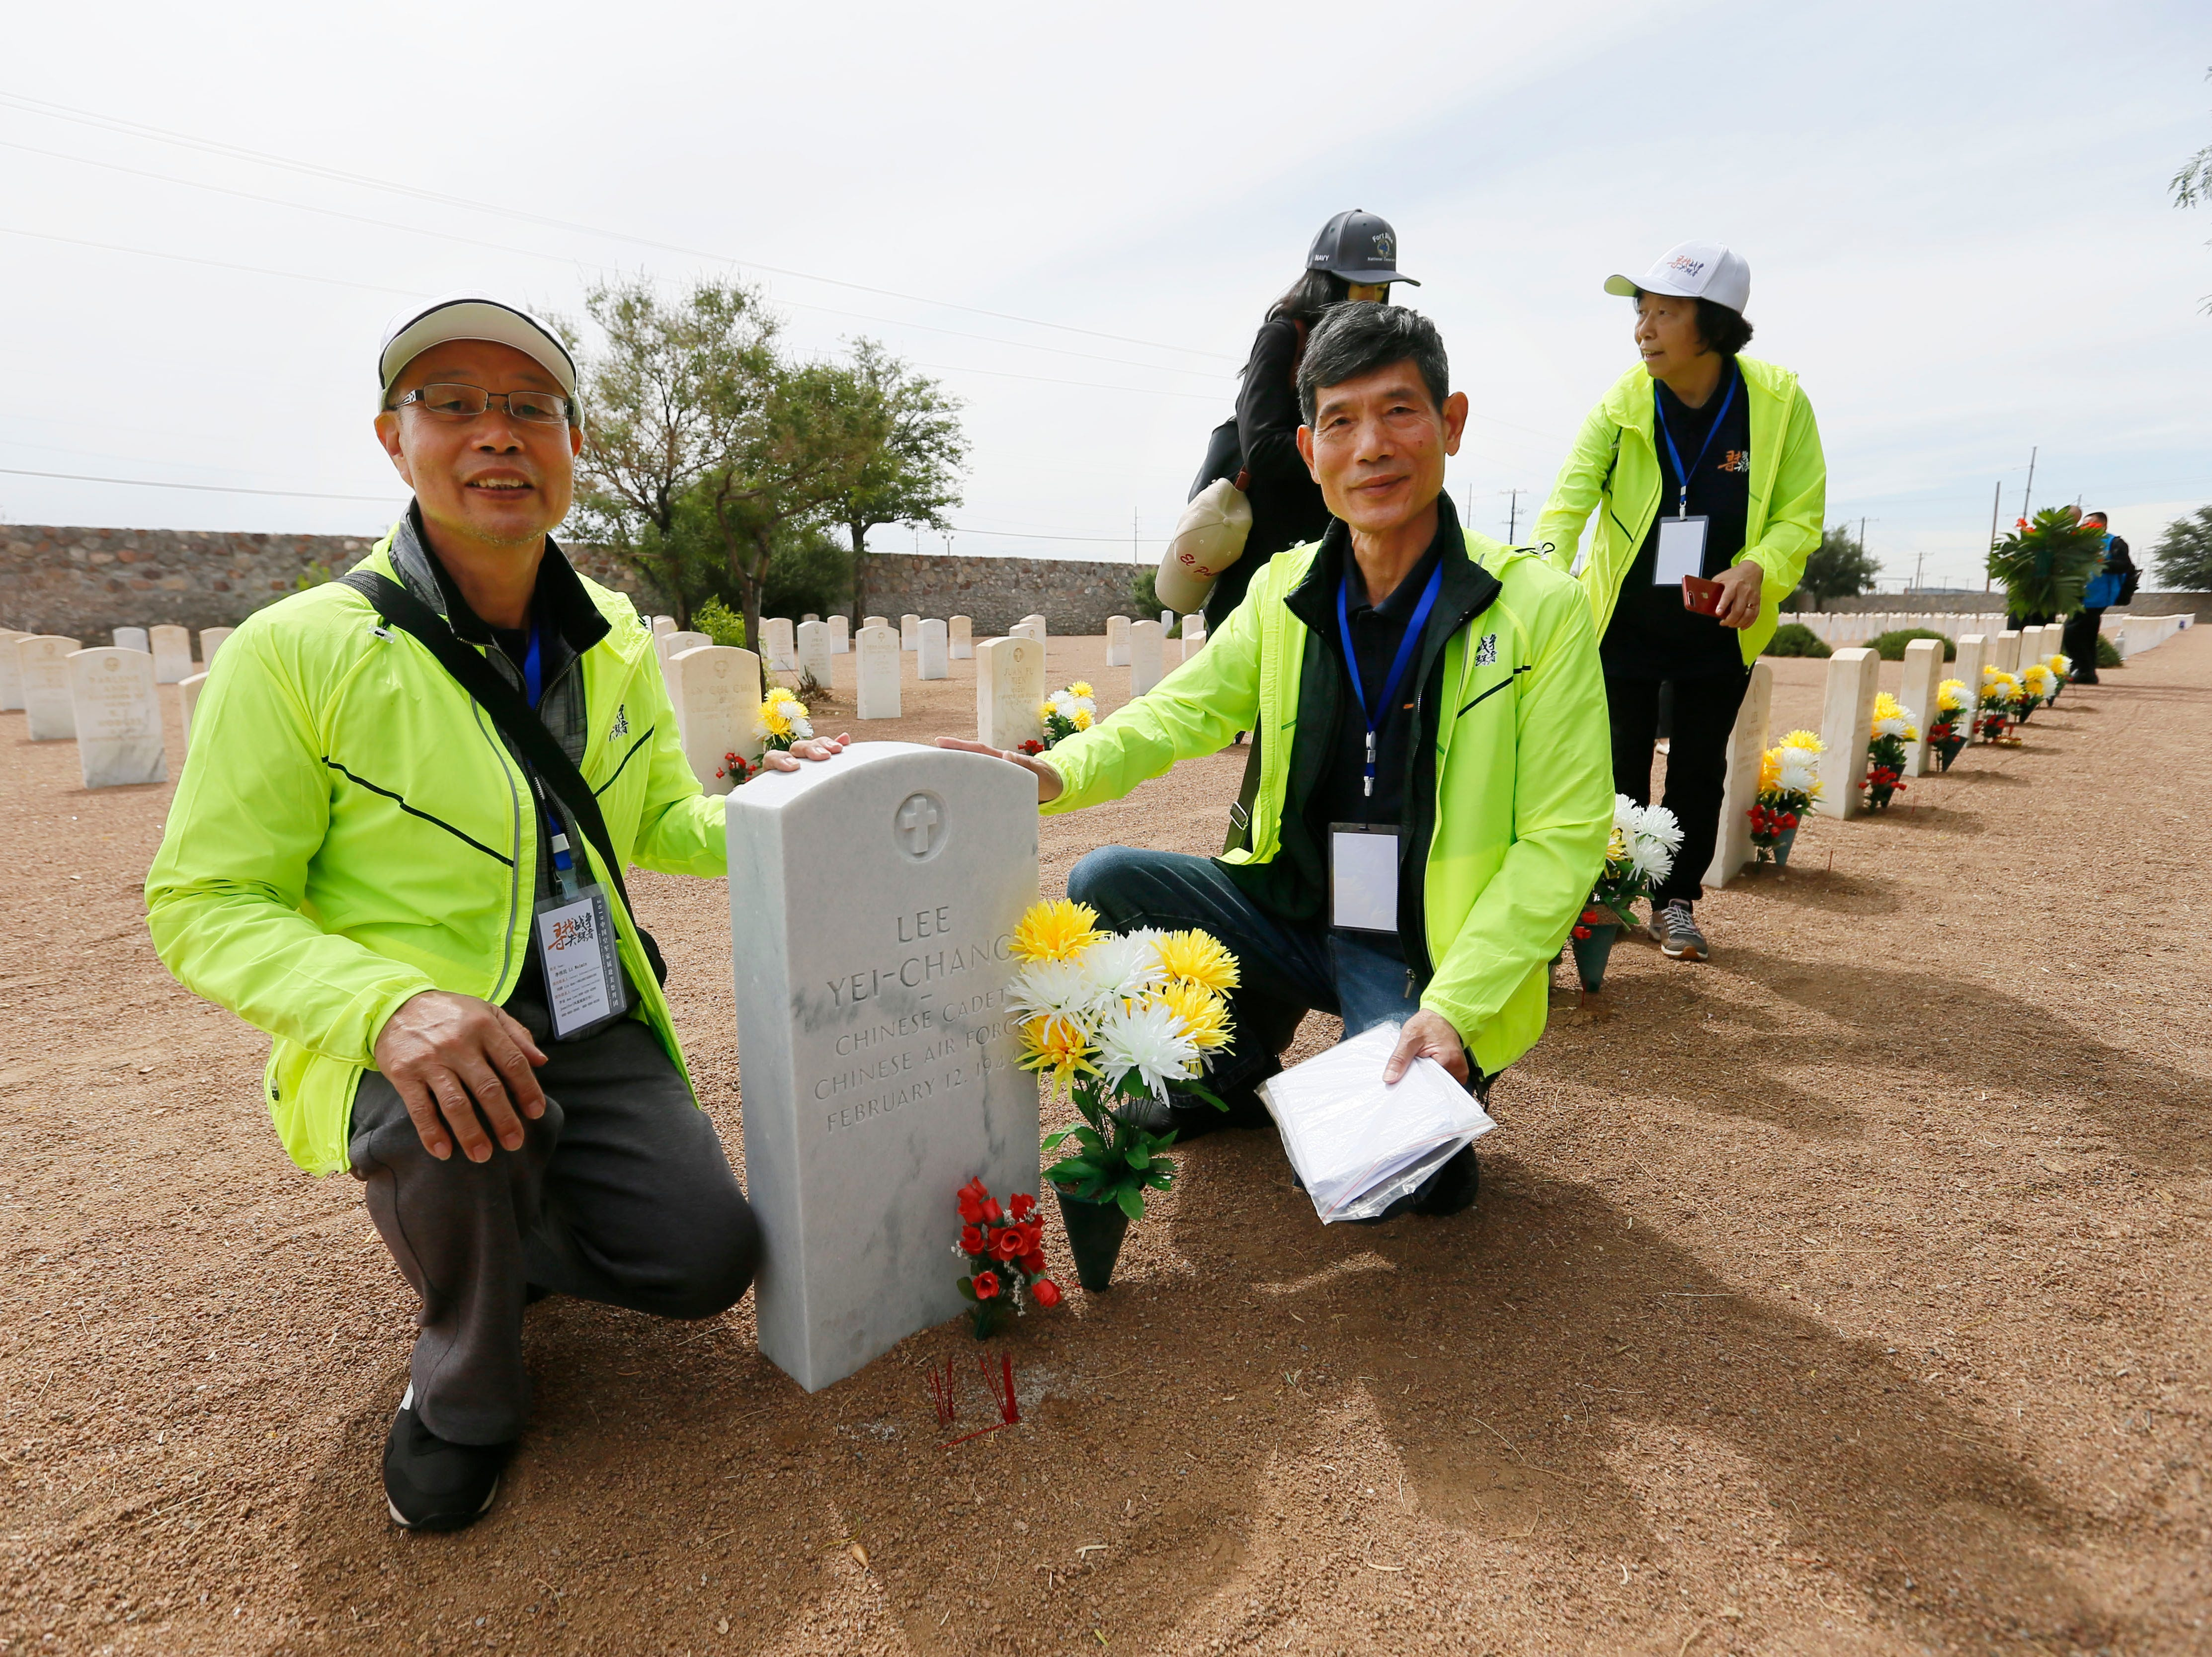 Li Shihua, right, and Li Weimin, left, visit where Li Shihua's great uncle Lee Yei-Chang was buried Monday, May 13, at Fort Bliss National Cemetery. The Hunan LongYue Peace Charity Development Center brought family members to El Paso to pay a special remembrance to their relatives who are amongst the 52 Chinese pilots who died in the U.S. during flight training in World War II.